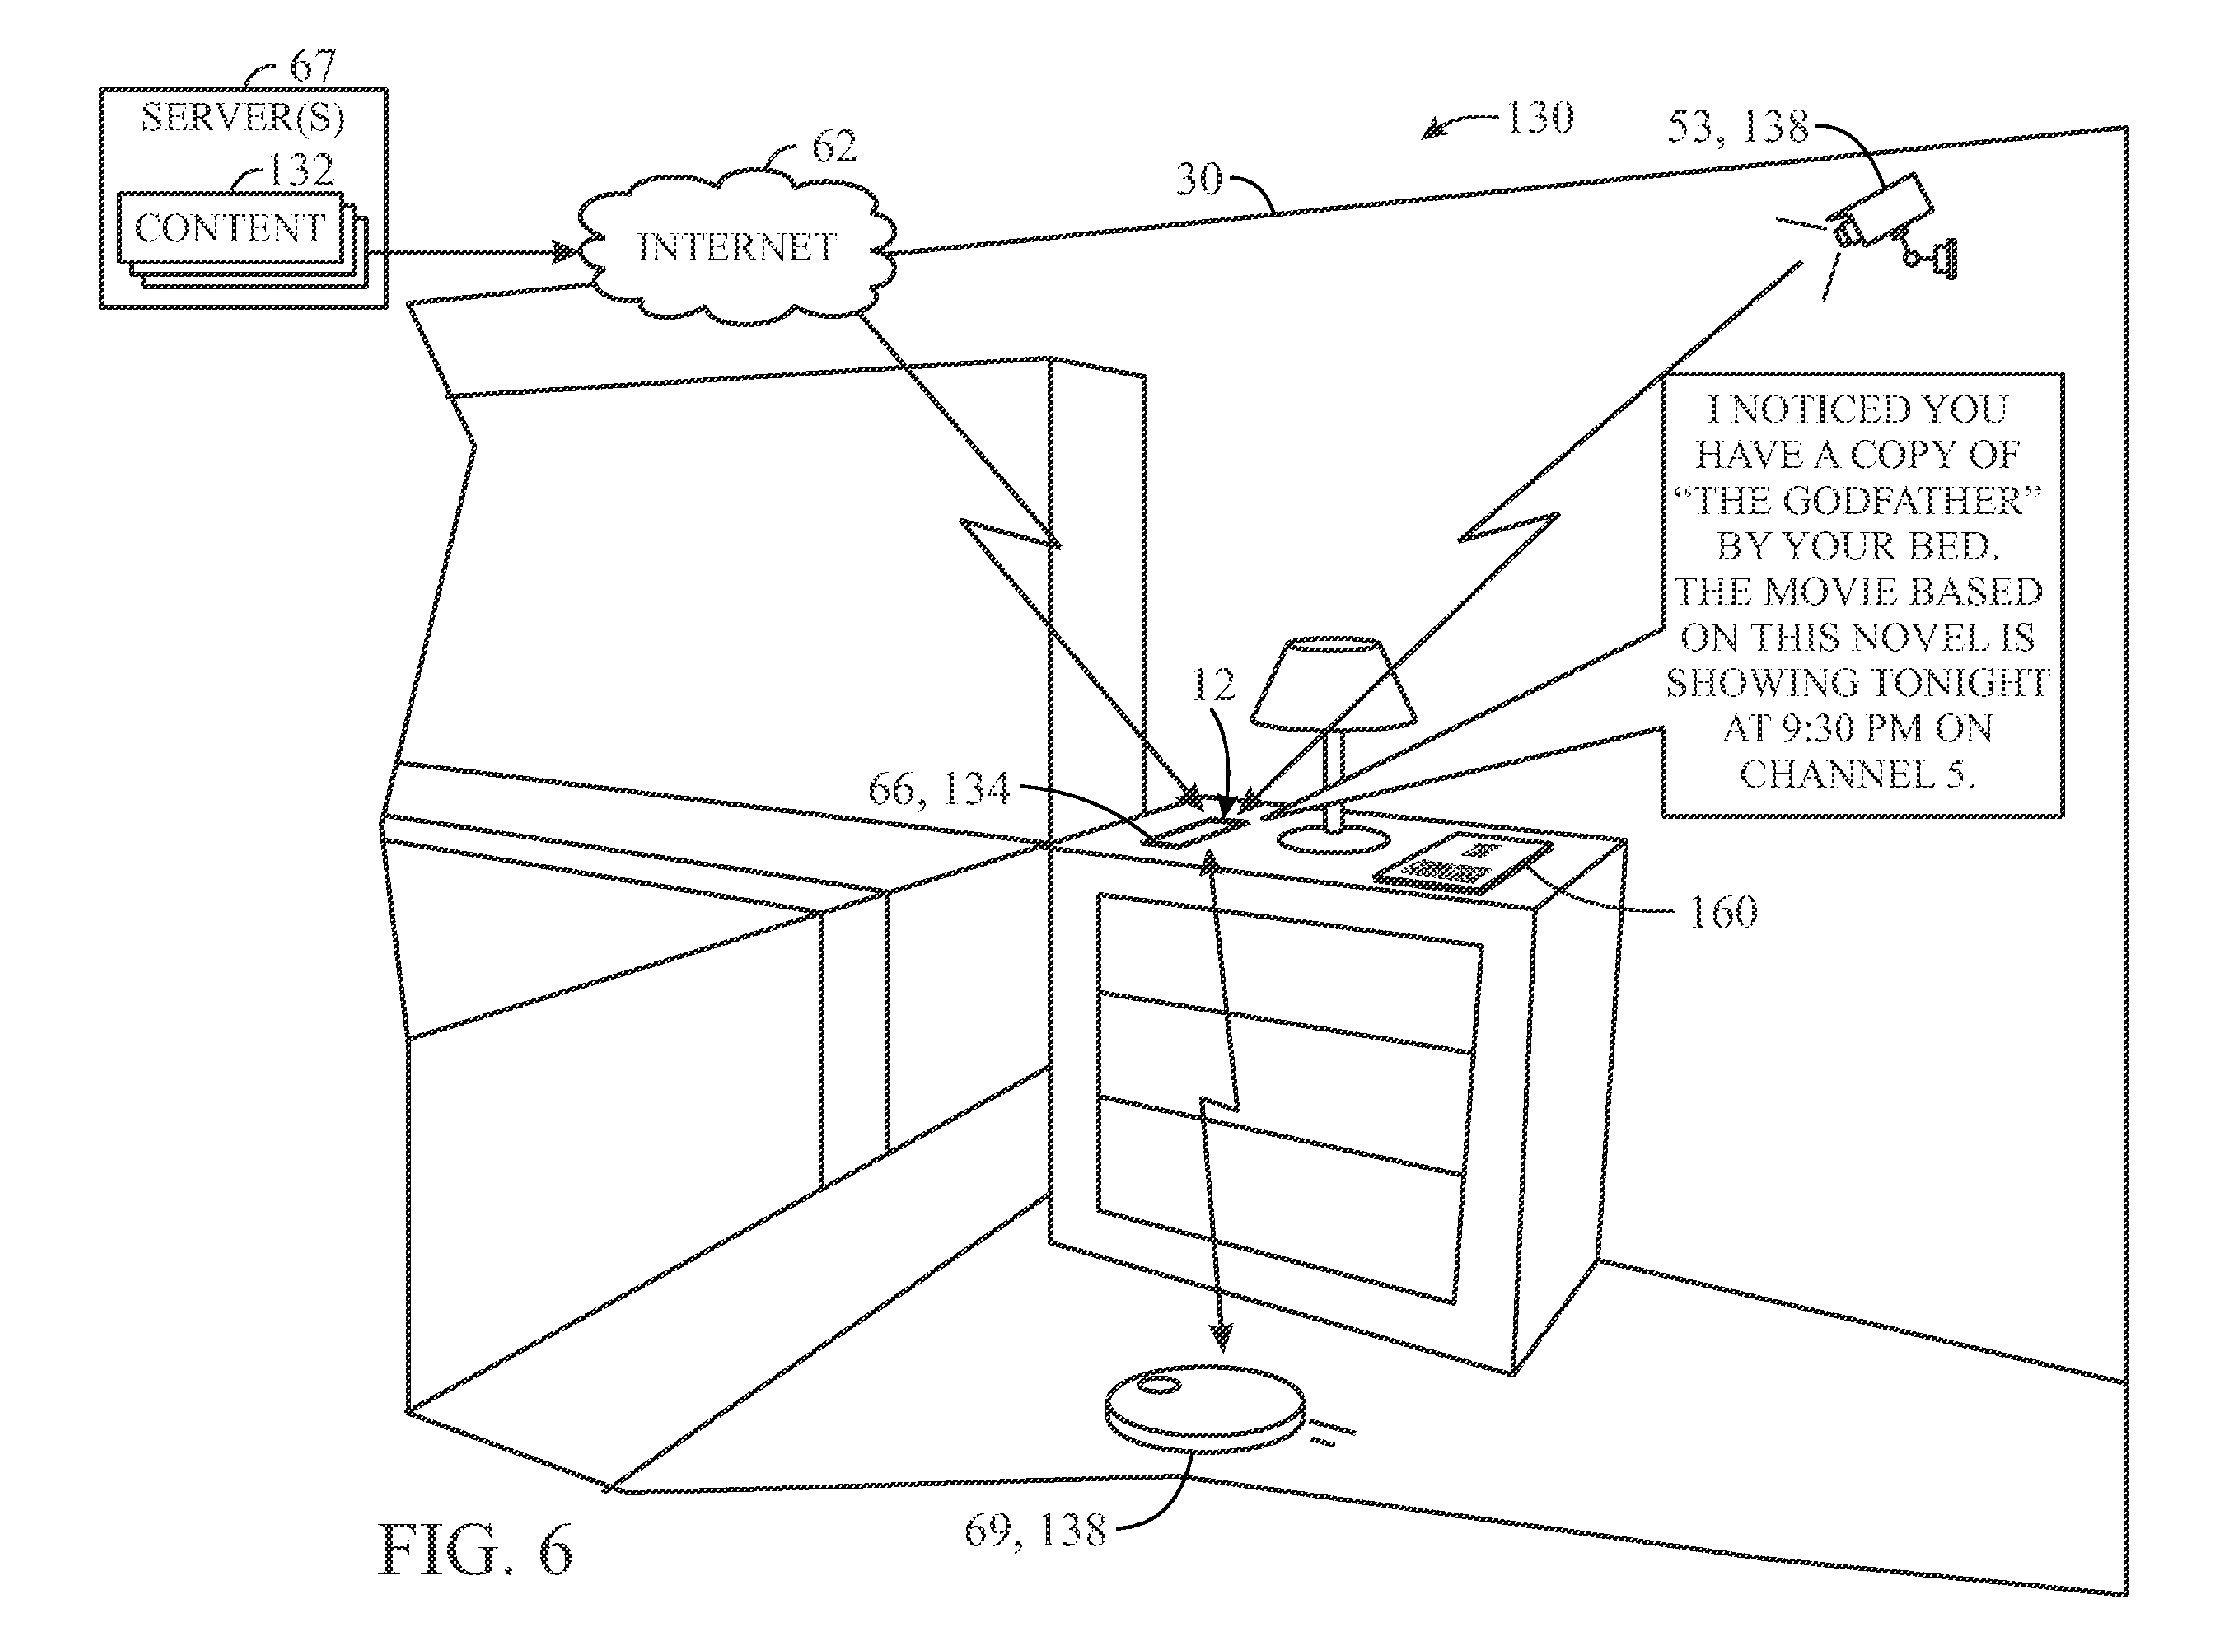 Amazon Echo And Home Patents Show The Power They